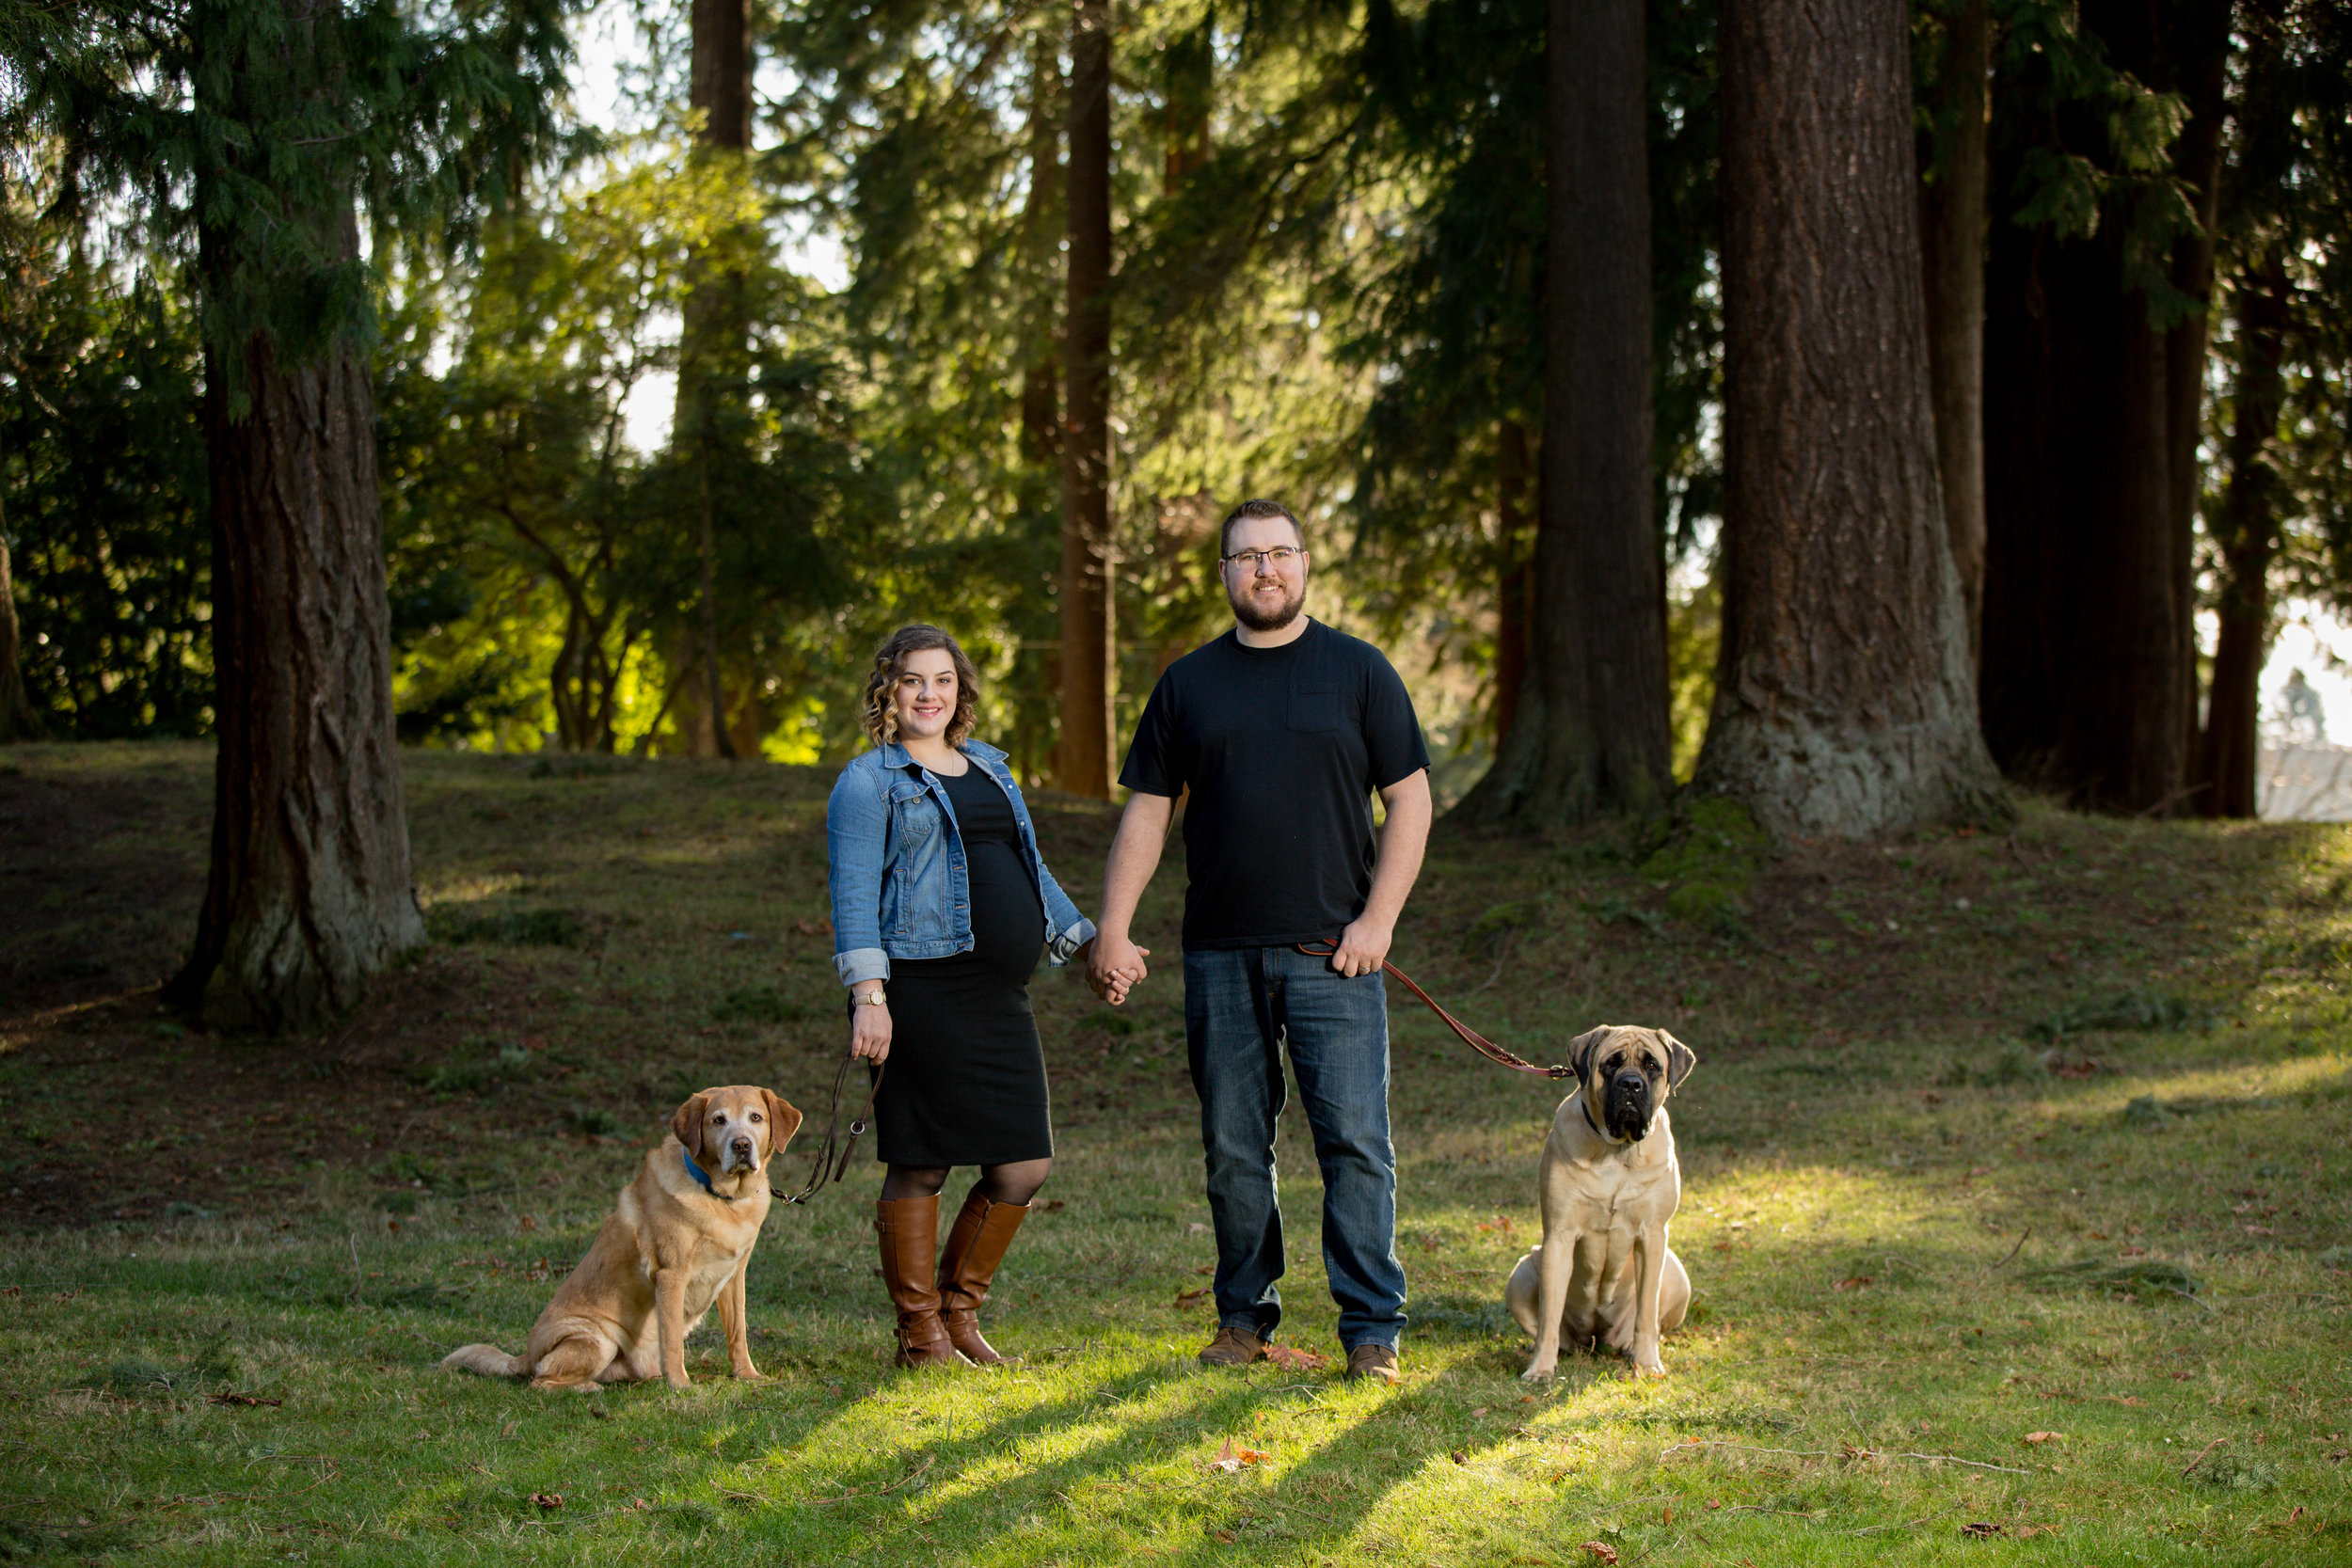 Maternity Photoshoot with two dogs in Snohomish, WA